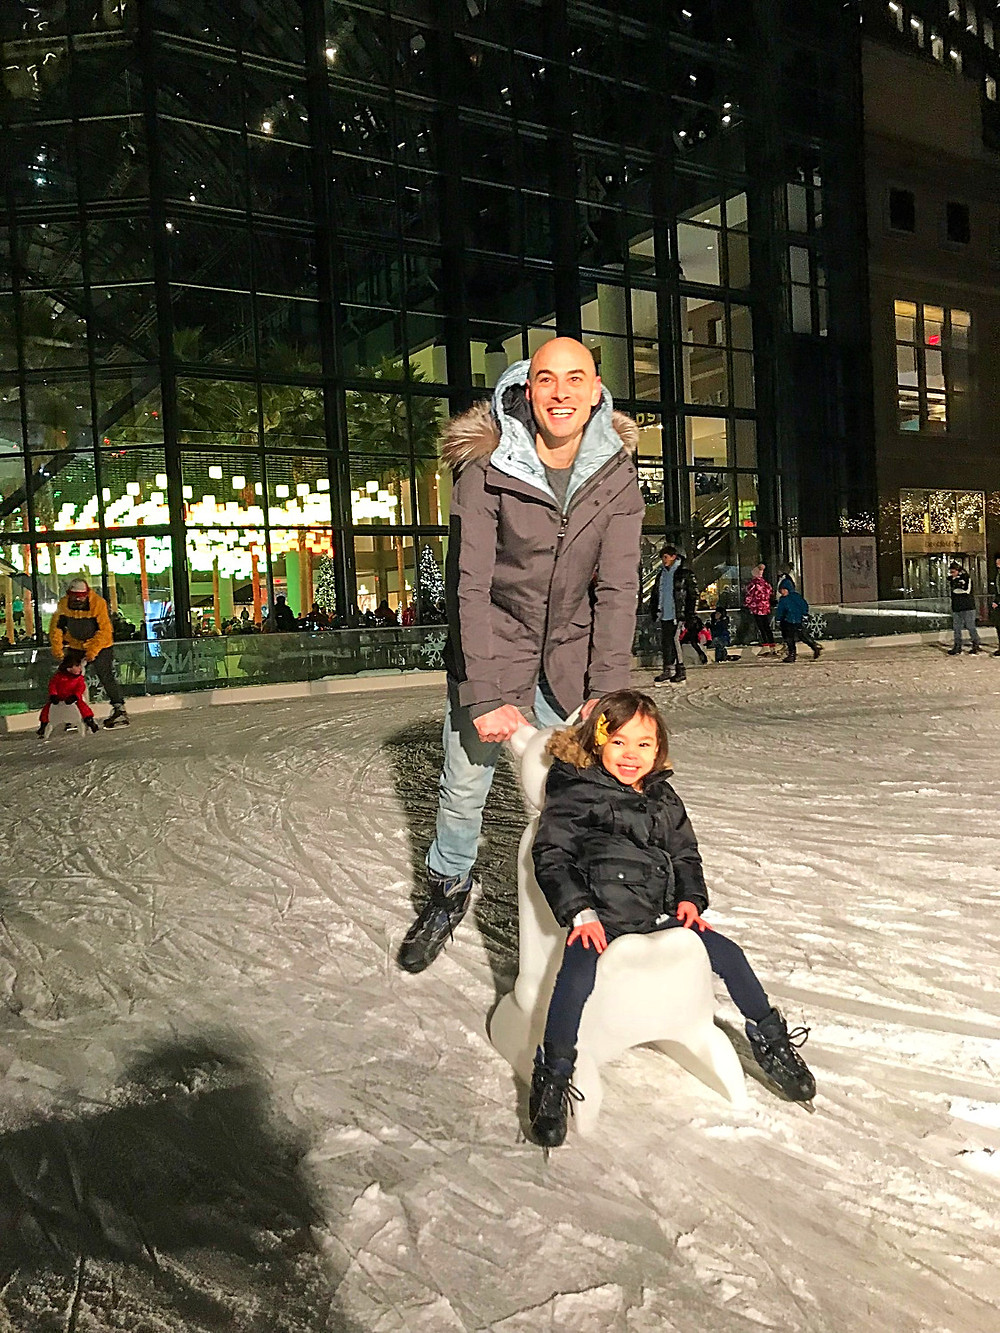 Holiday Bucket List, Fun things to do in NYC for the holidays with your kids, Instagram Bait, Holiday Pop Up, NYC Pop Up, Free in NYC, Curious G and Me, NYC family, NYC with kids, NYC Christmas, NYC icon, Holiday Shopping, Christmas AF, Christmas overload, Christmas explosion, Brookfield Place, Luminaries, ice skating in NYC, The Rink at Brookfield Place